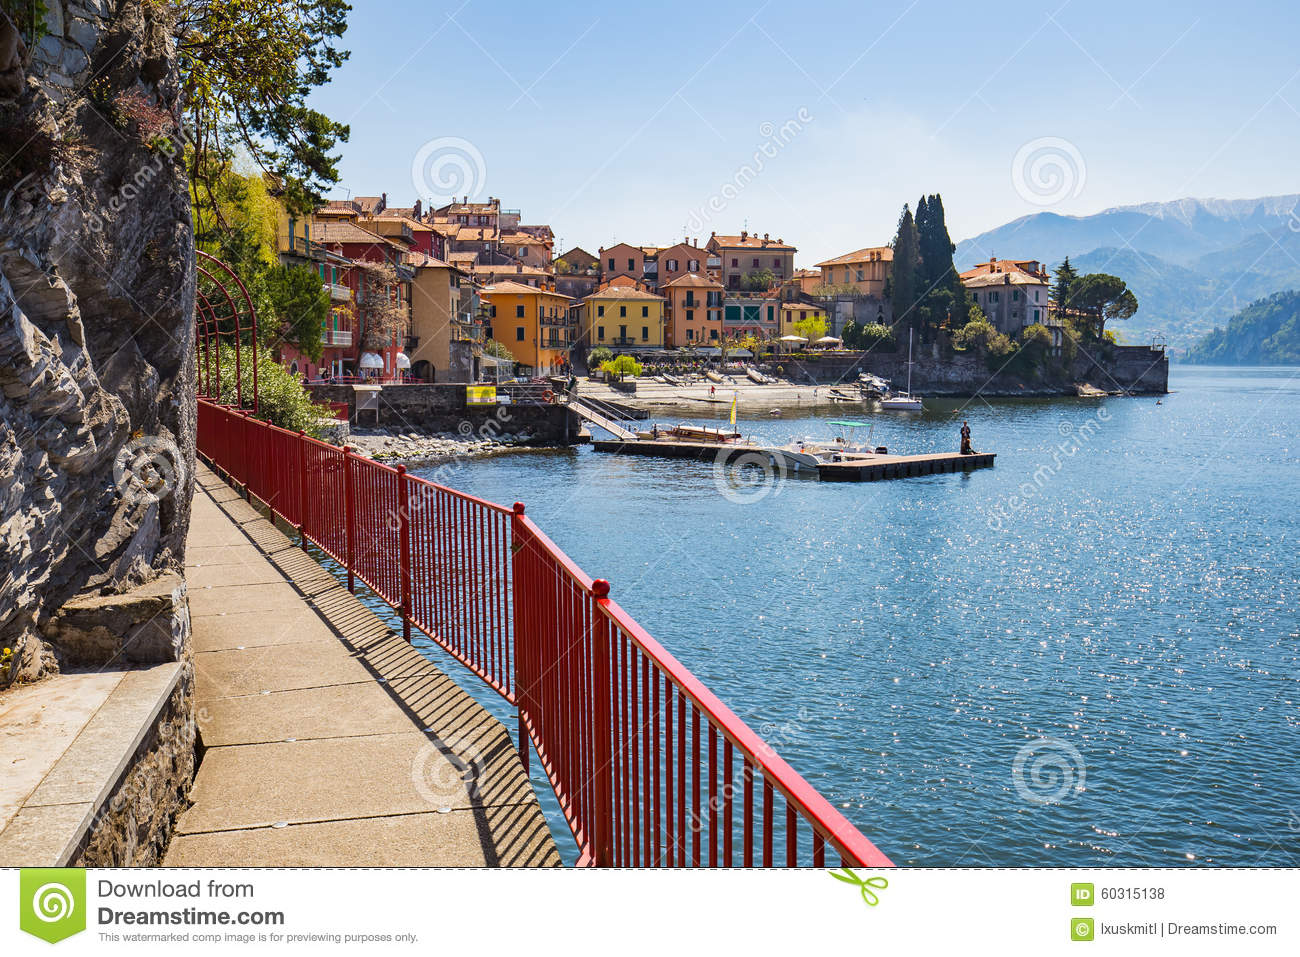 Ville de varenna sur le lac como milan italie photo for Piscine destock